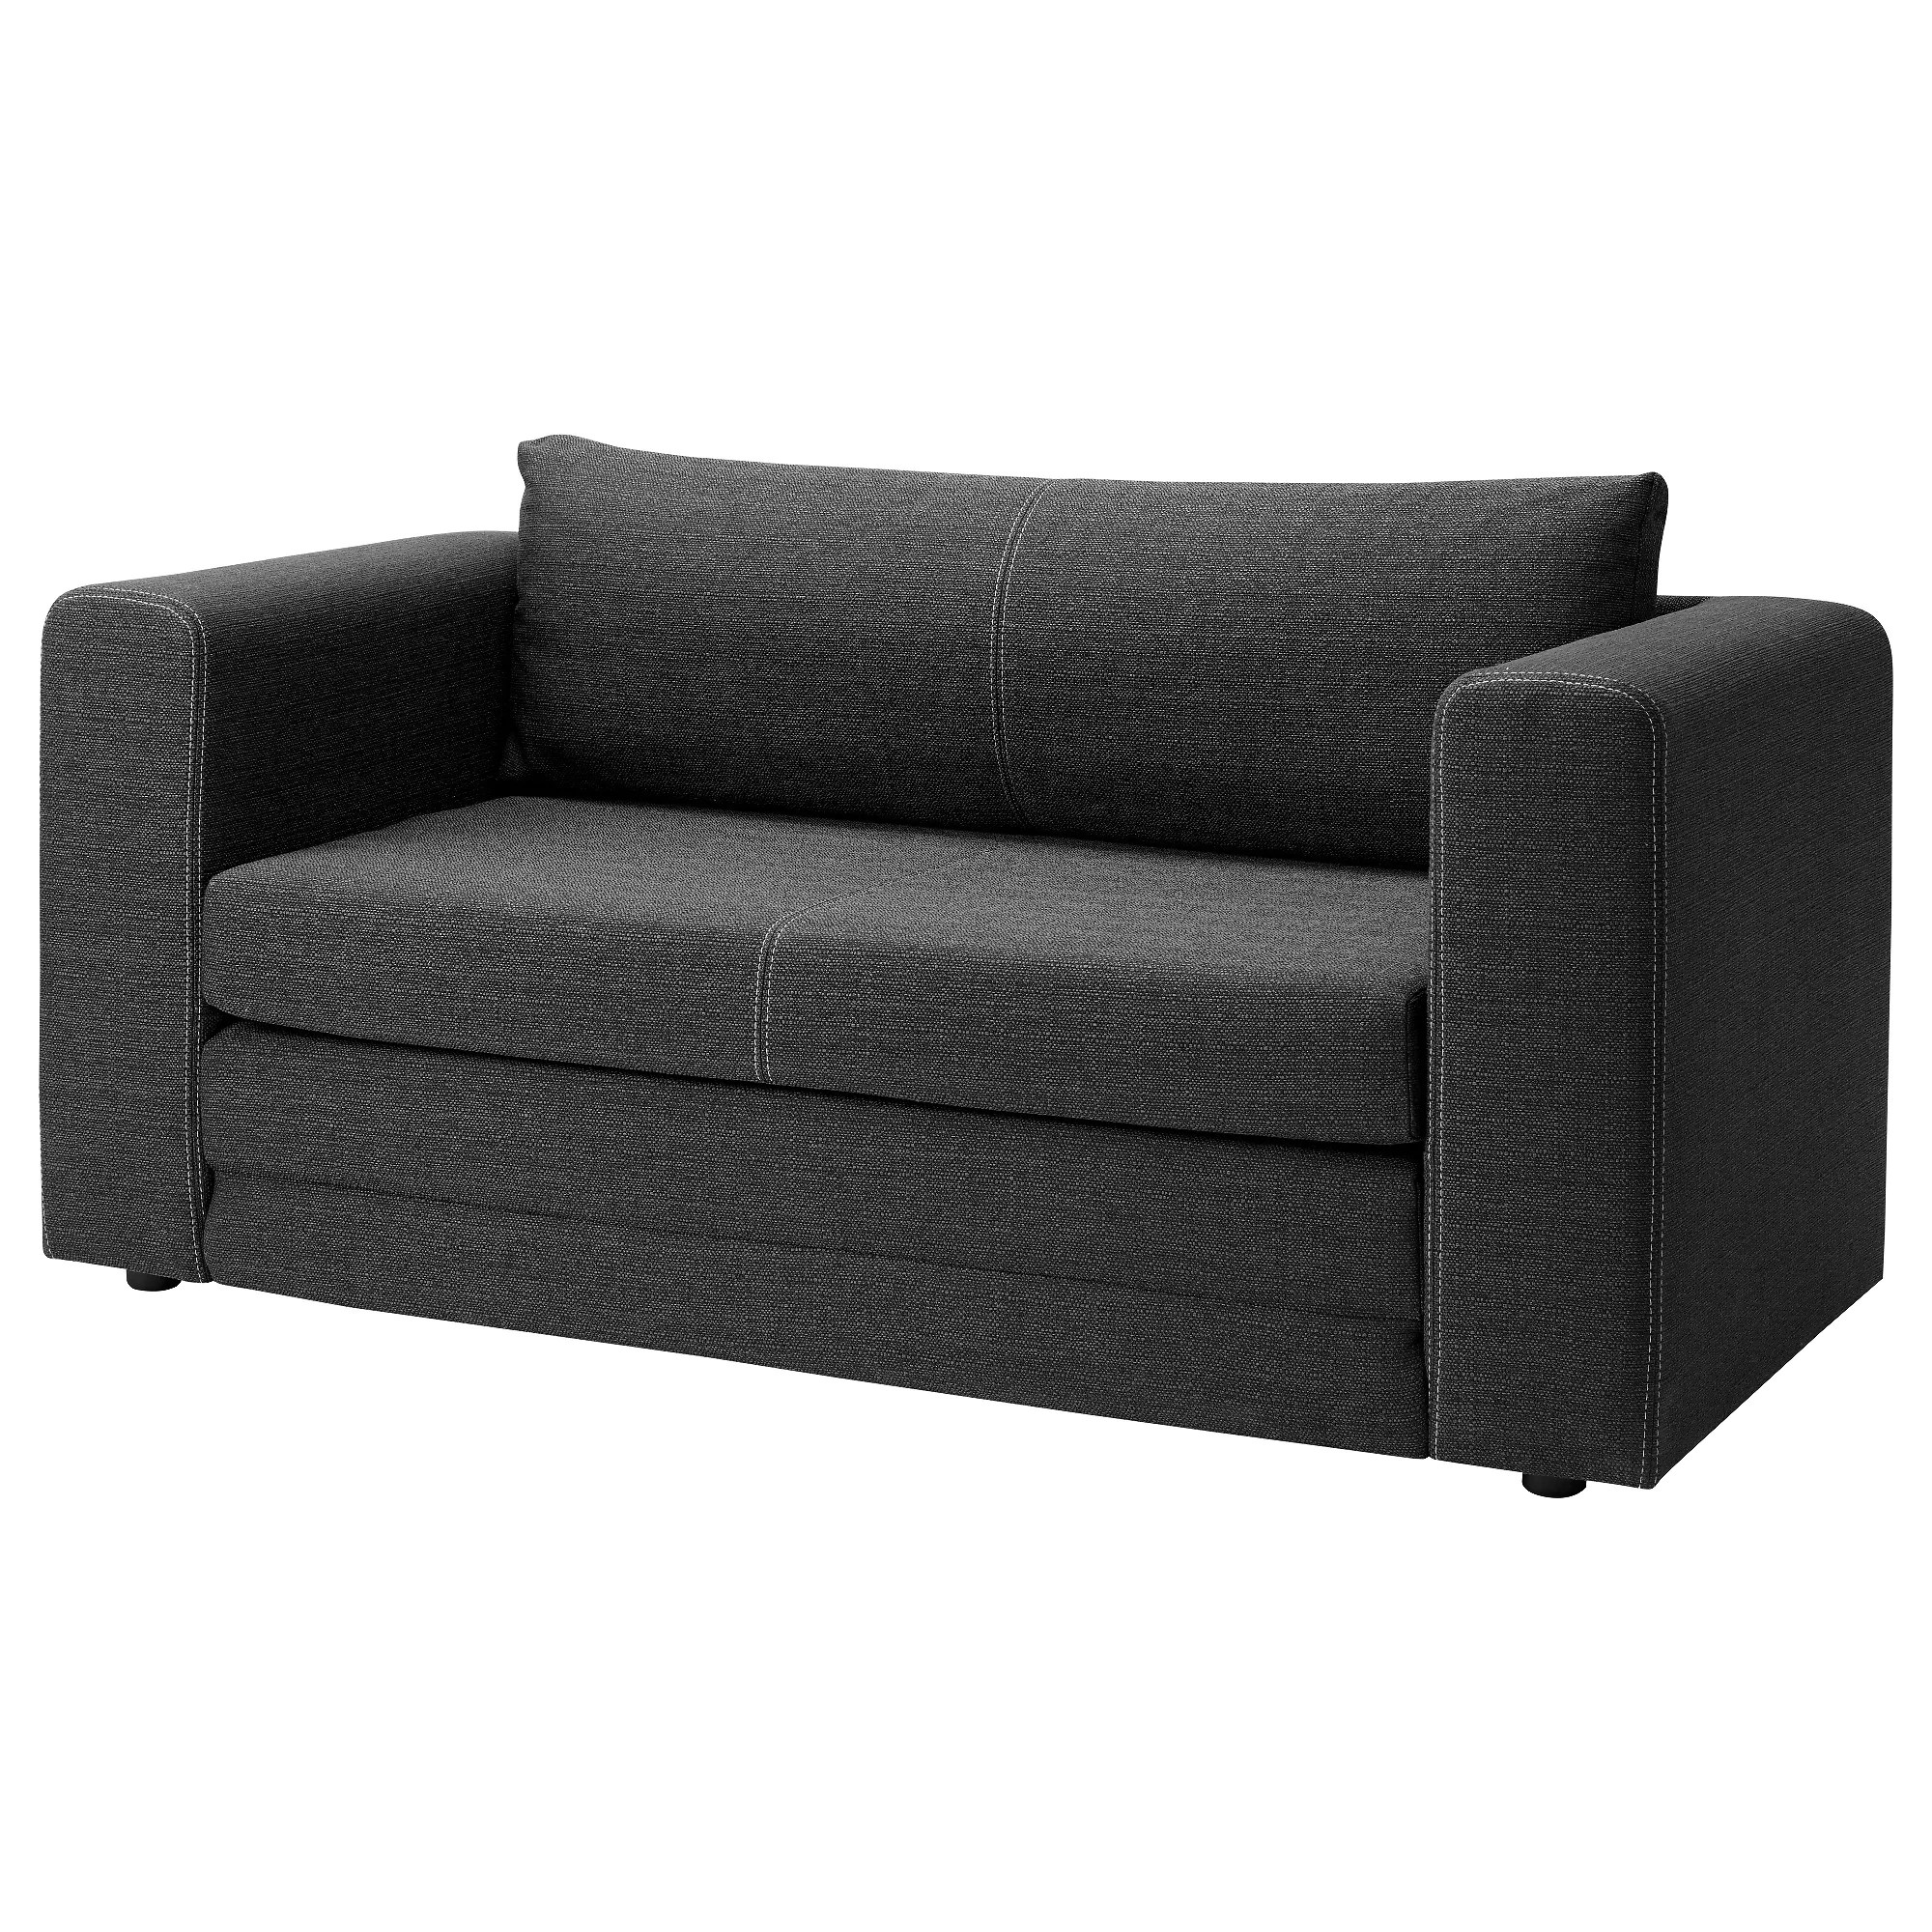 Bettsofa Ikea Bewertung 2er Bettsofa Askeby Grau